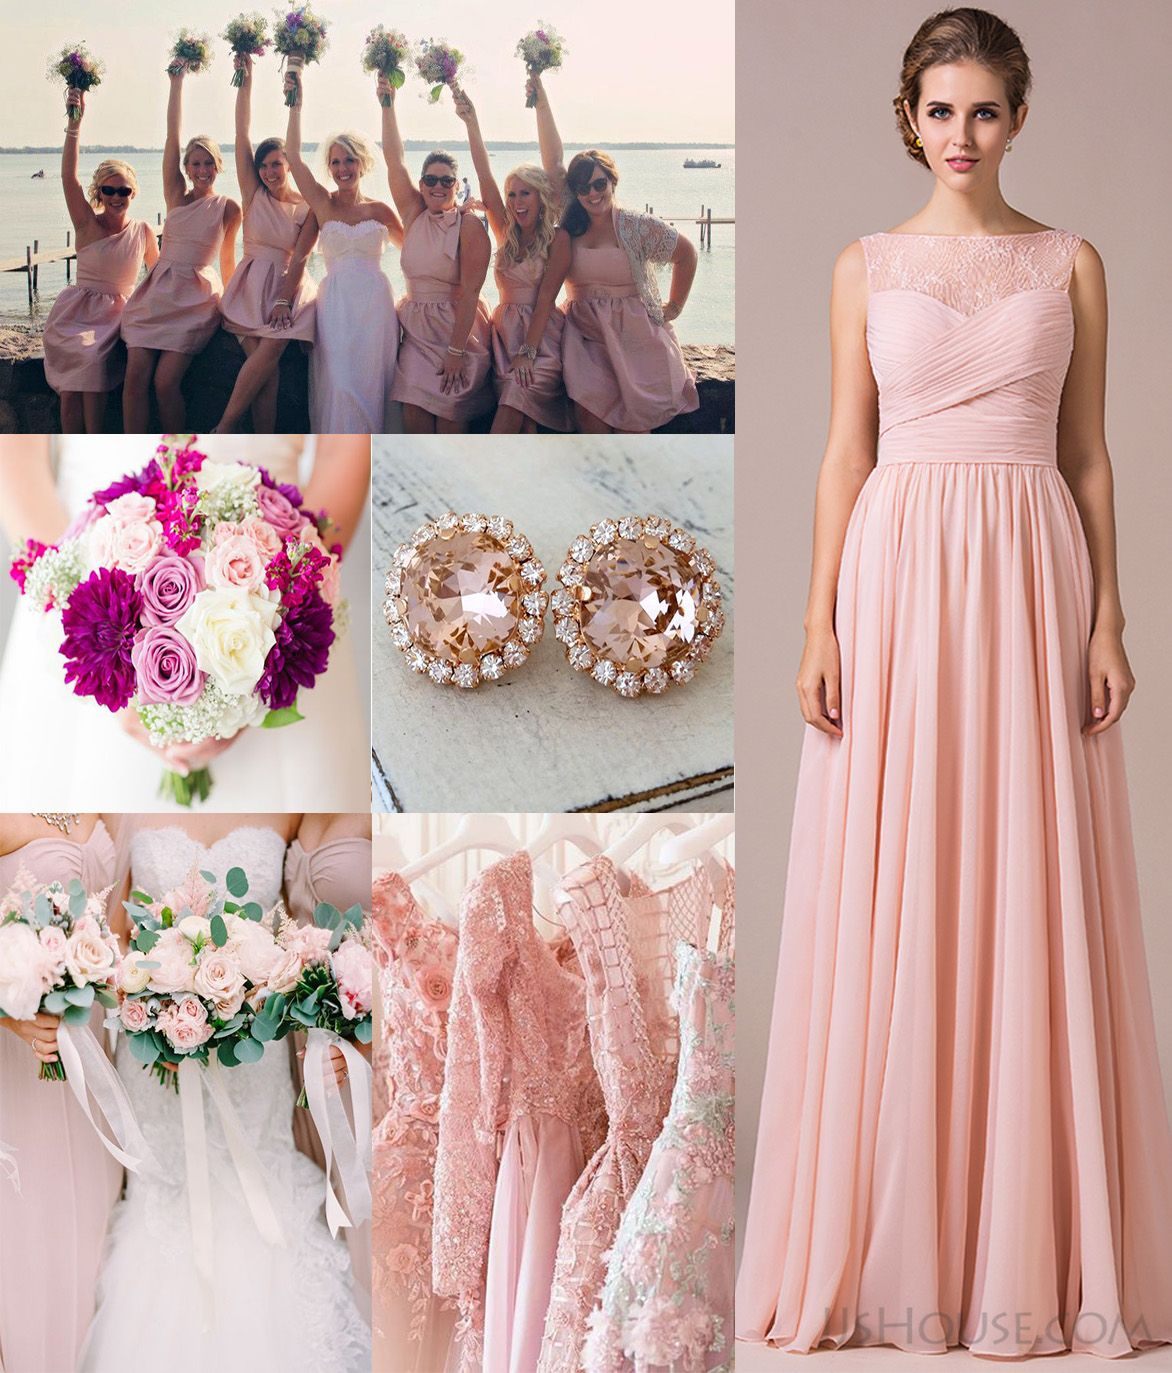 Blushing pink bridesmaid dressevery girl has a pink dream blushing pink bridesmaid dressevery girl has a pink dream jjshouse jjshousebridesmaiddress ombrellifo Images